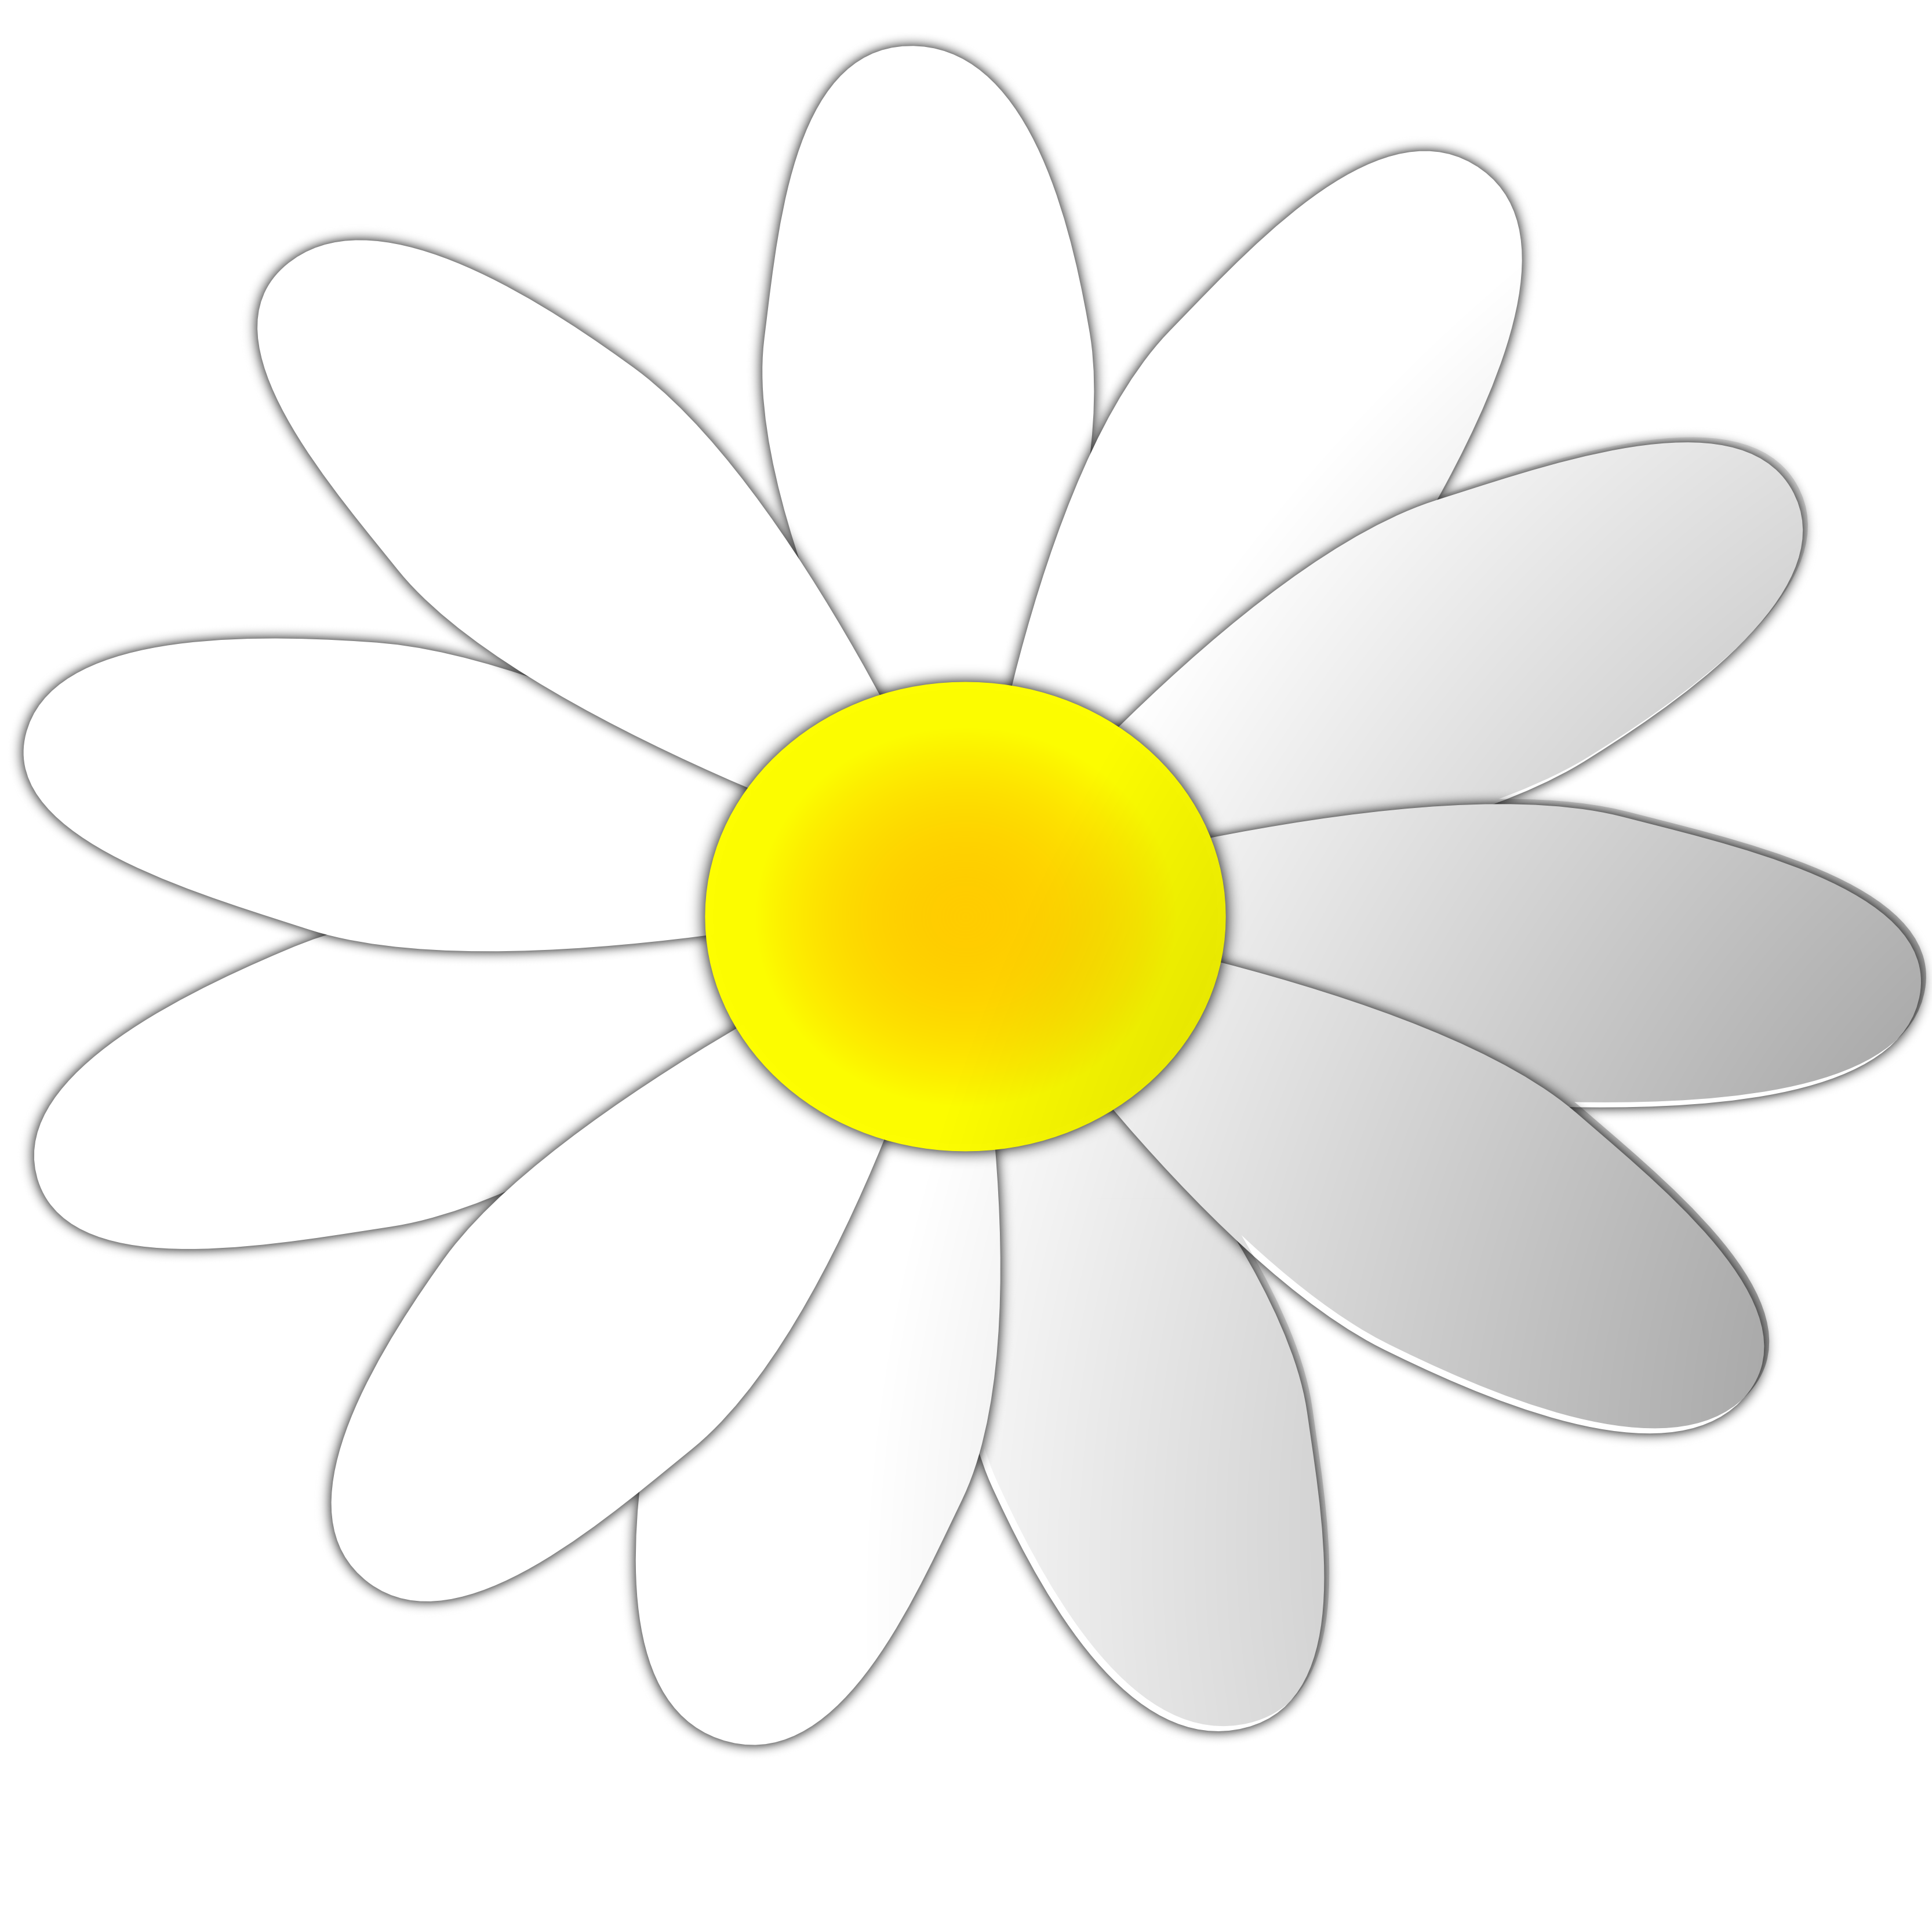 Daisies clipart daisy petal. Free images download clip